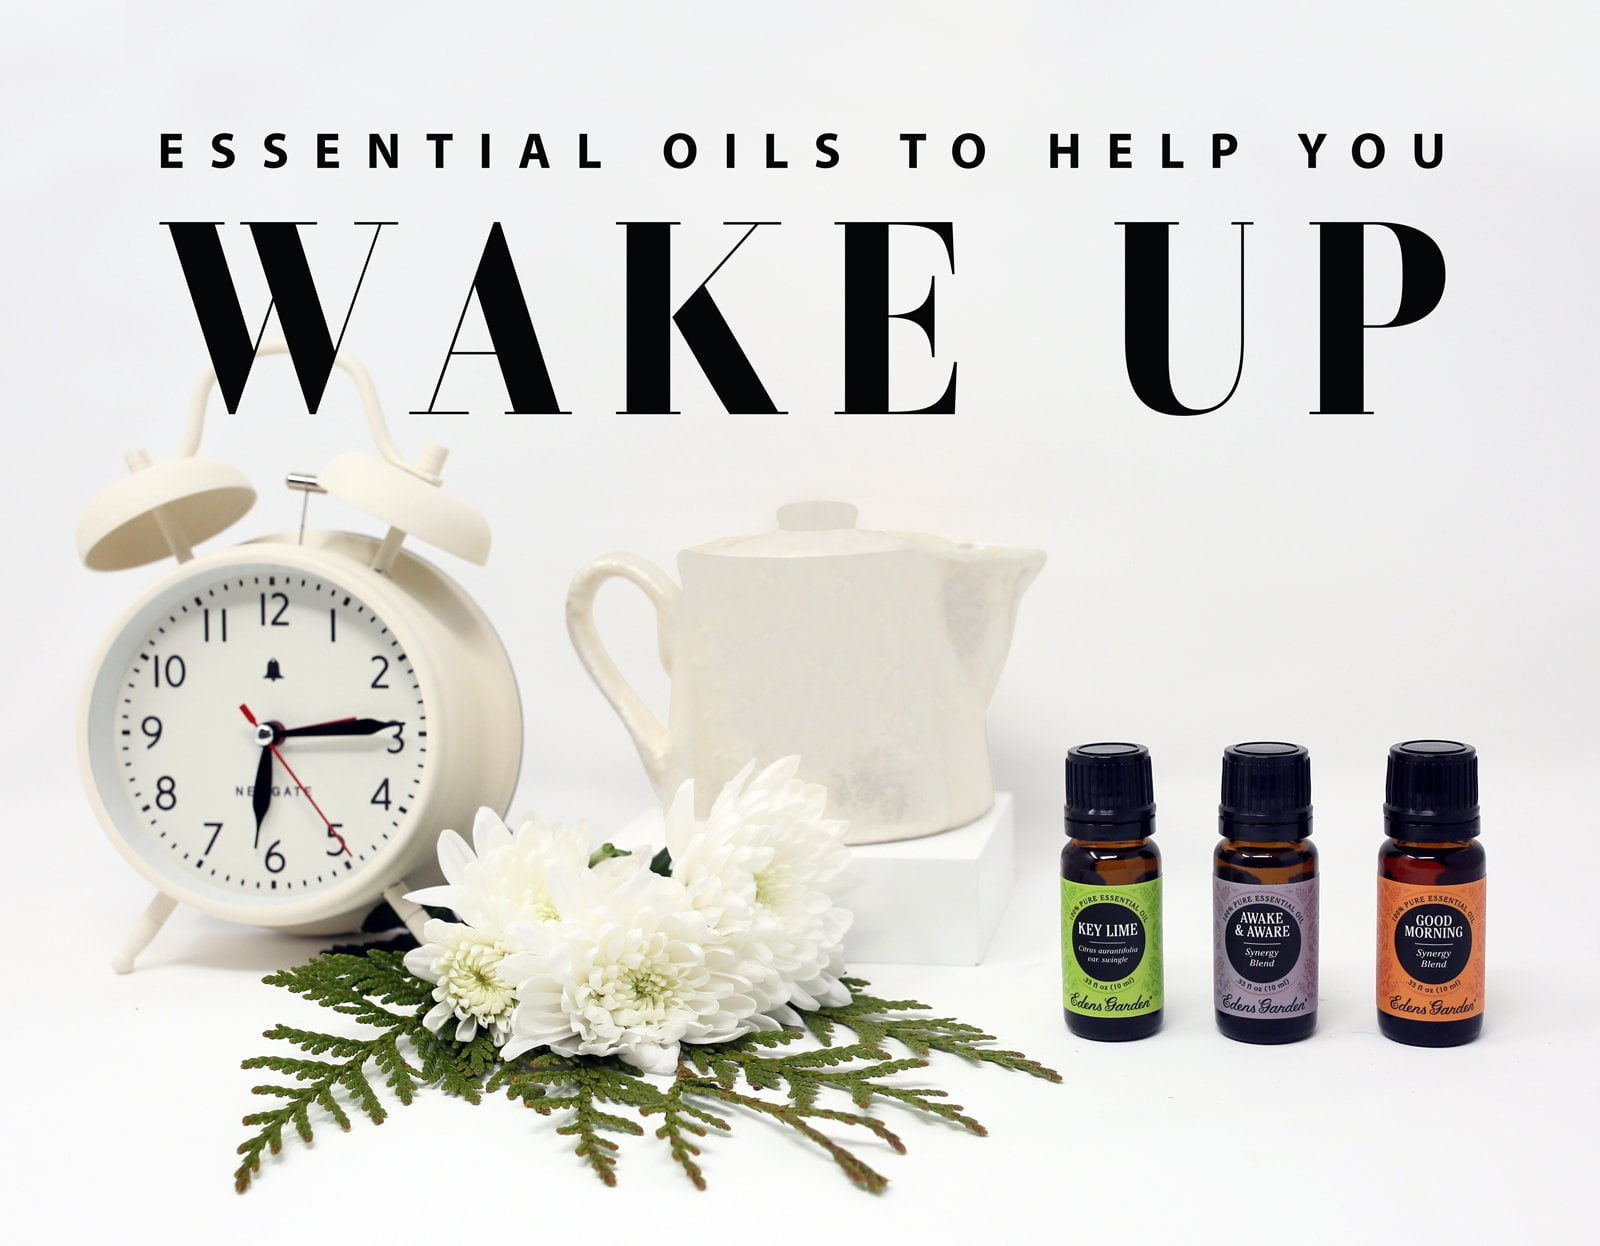 Essential Oils To Help You Wake Up